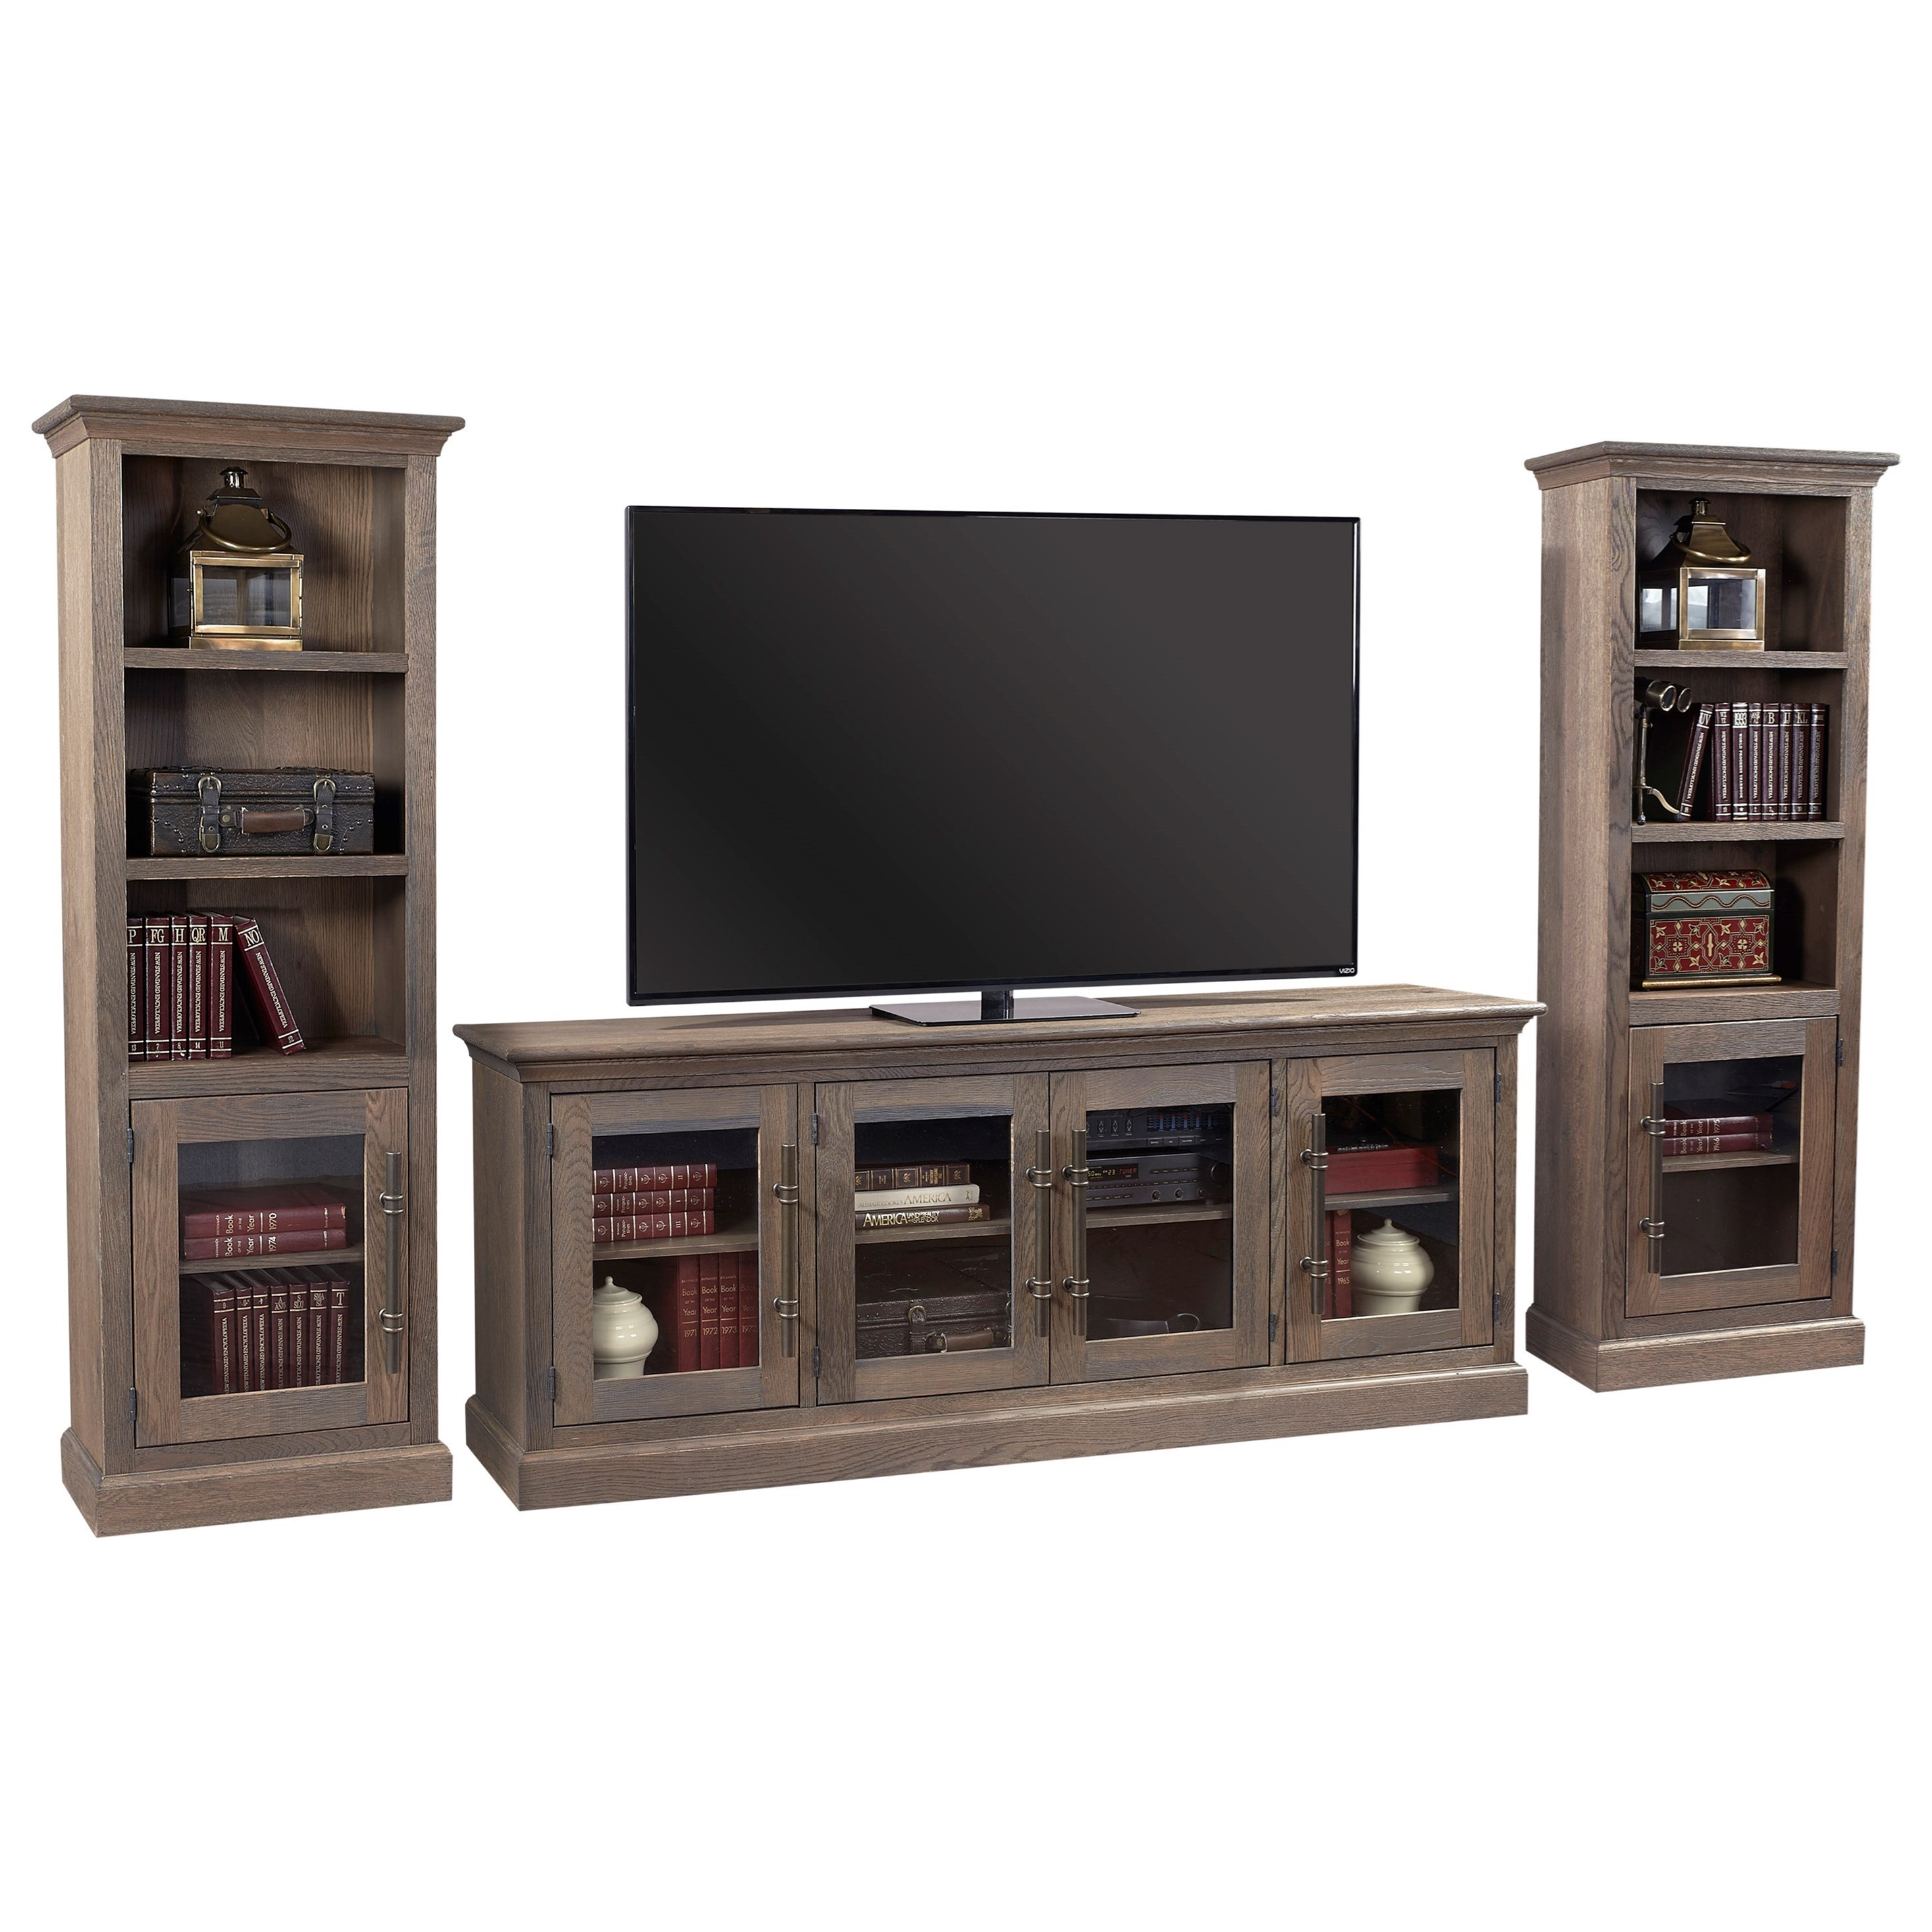 "Manchester 85"" Entertainment Wall by Aspenhome at Stoney Creek Furniture"